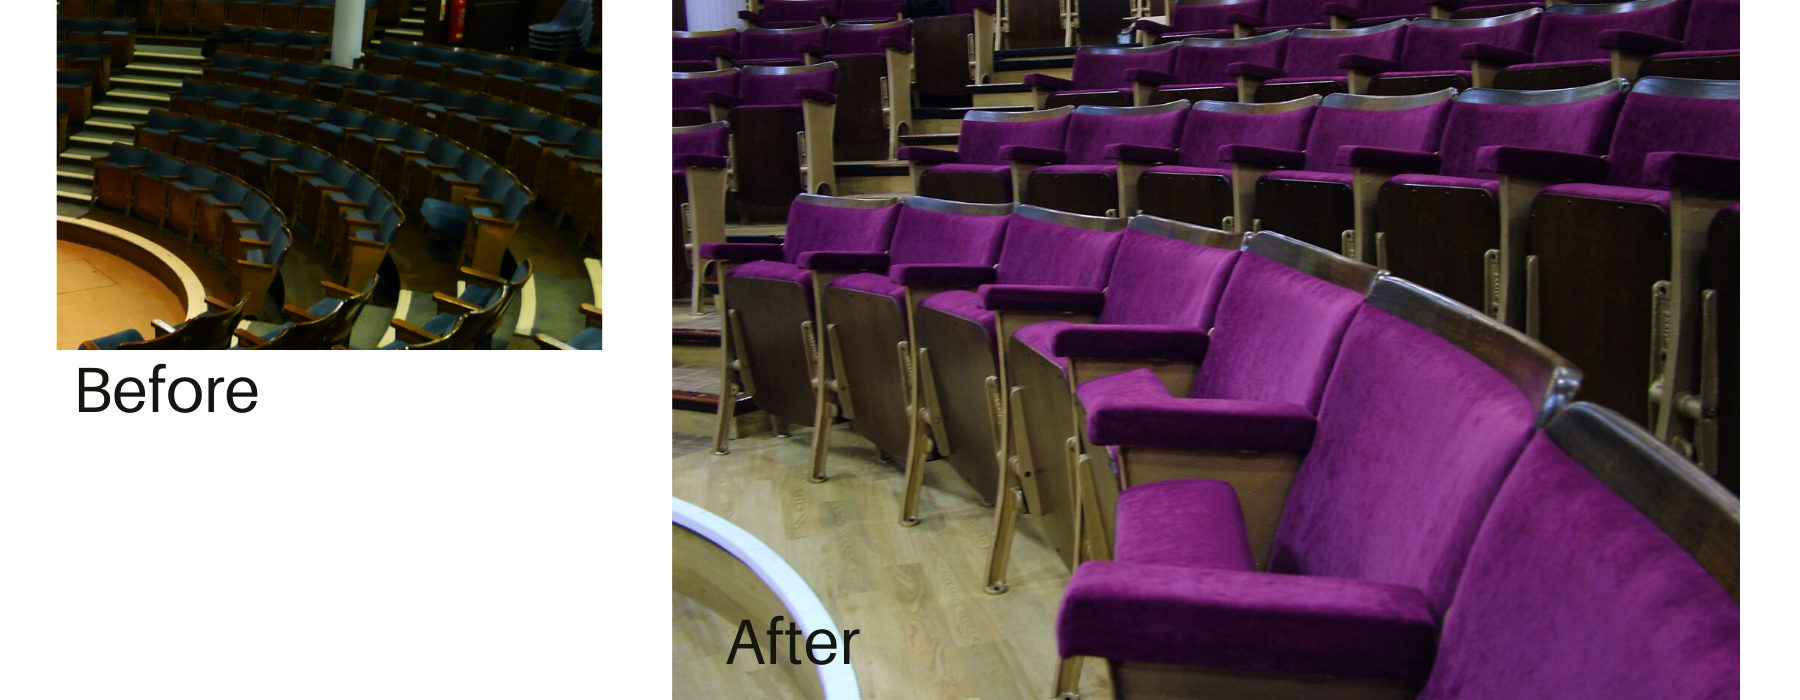 Before and after images of traditional fixed seating in a theatre auditorium following reupholstery in purple velvet fabric